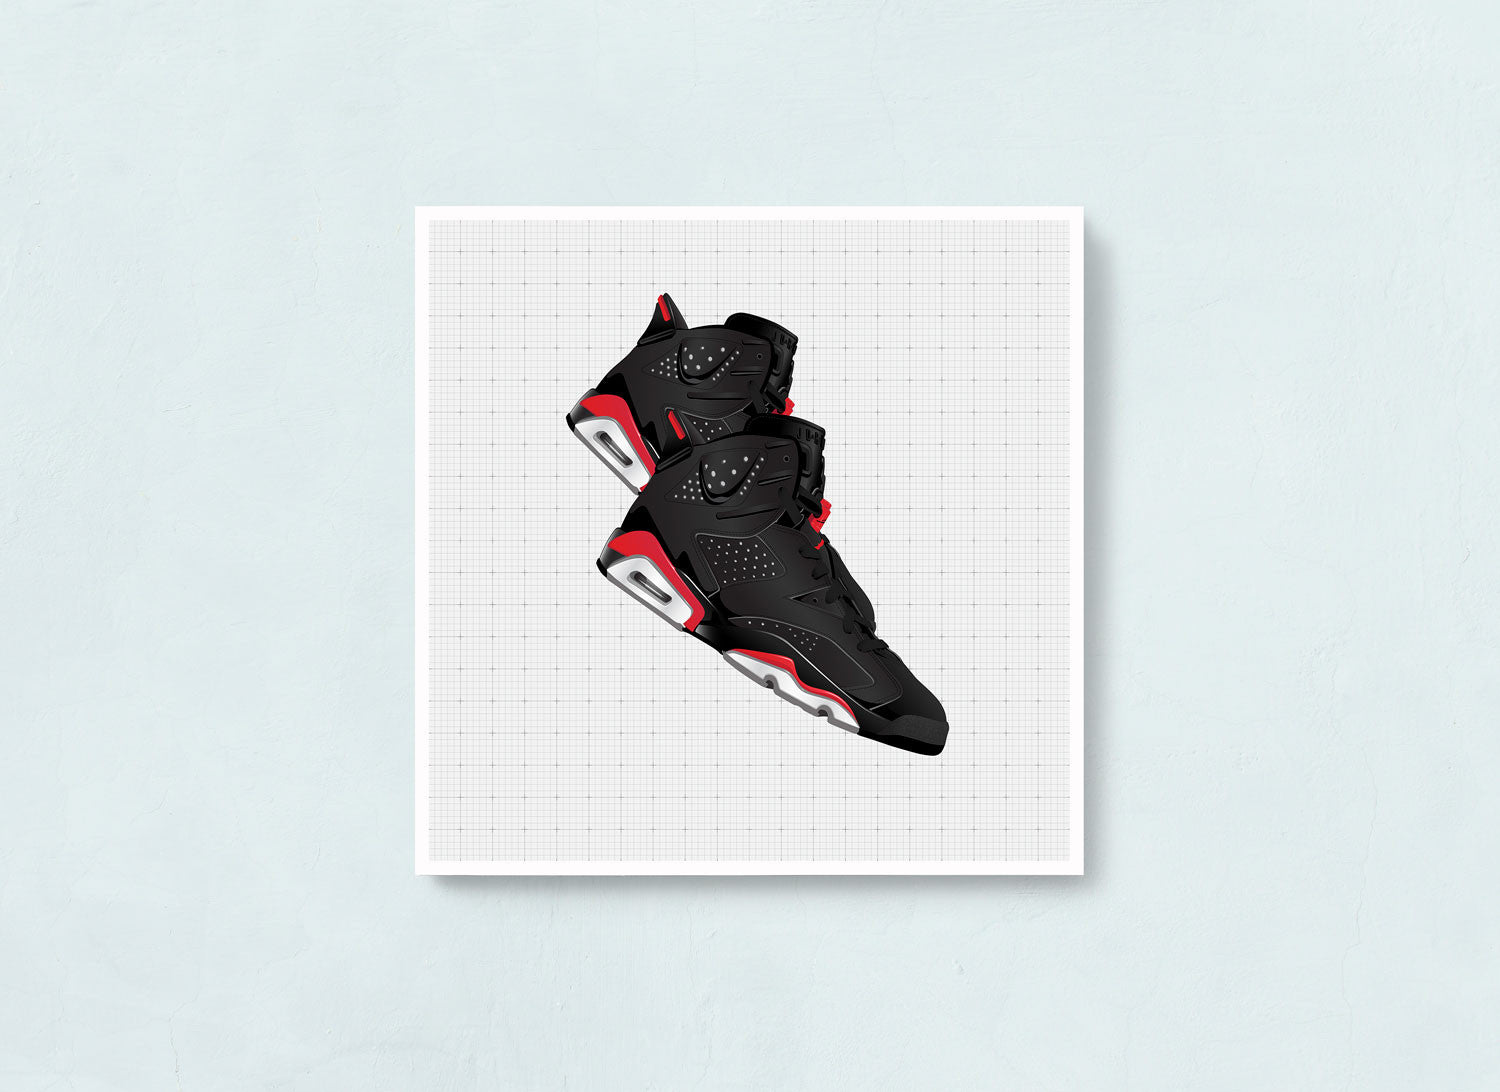 Contemporary Sneaker Art Print of the Air Jordan 6 Bred